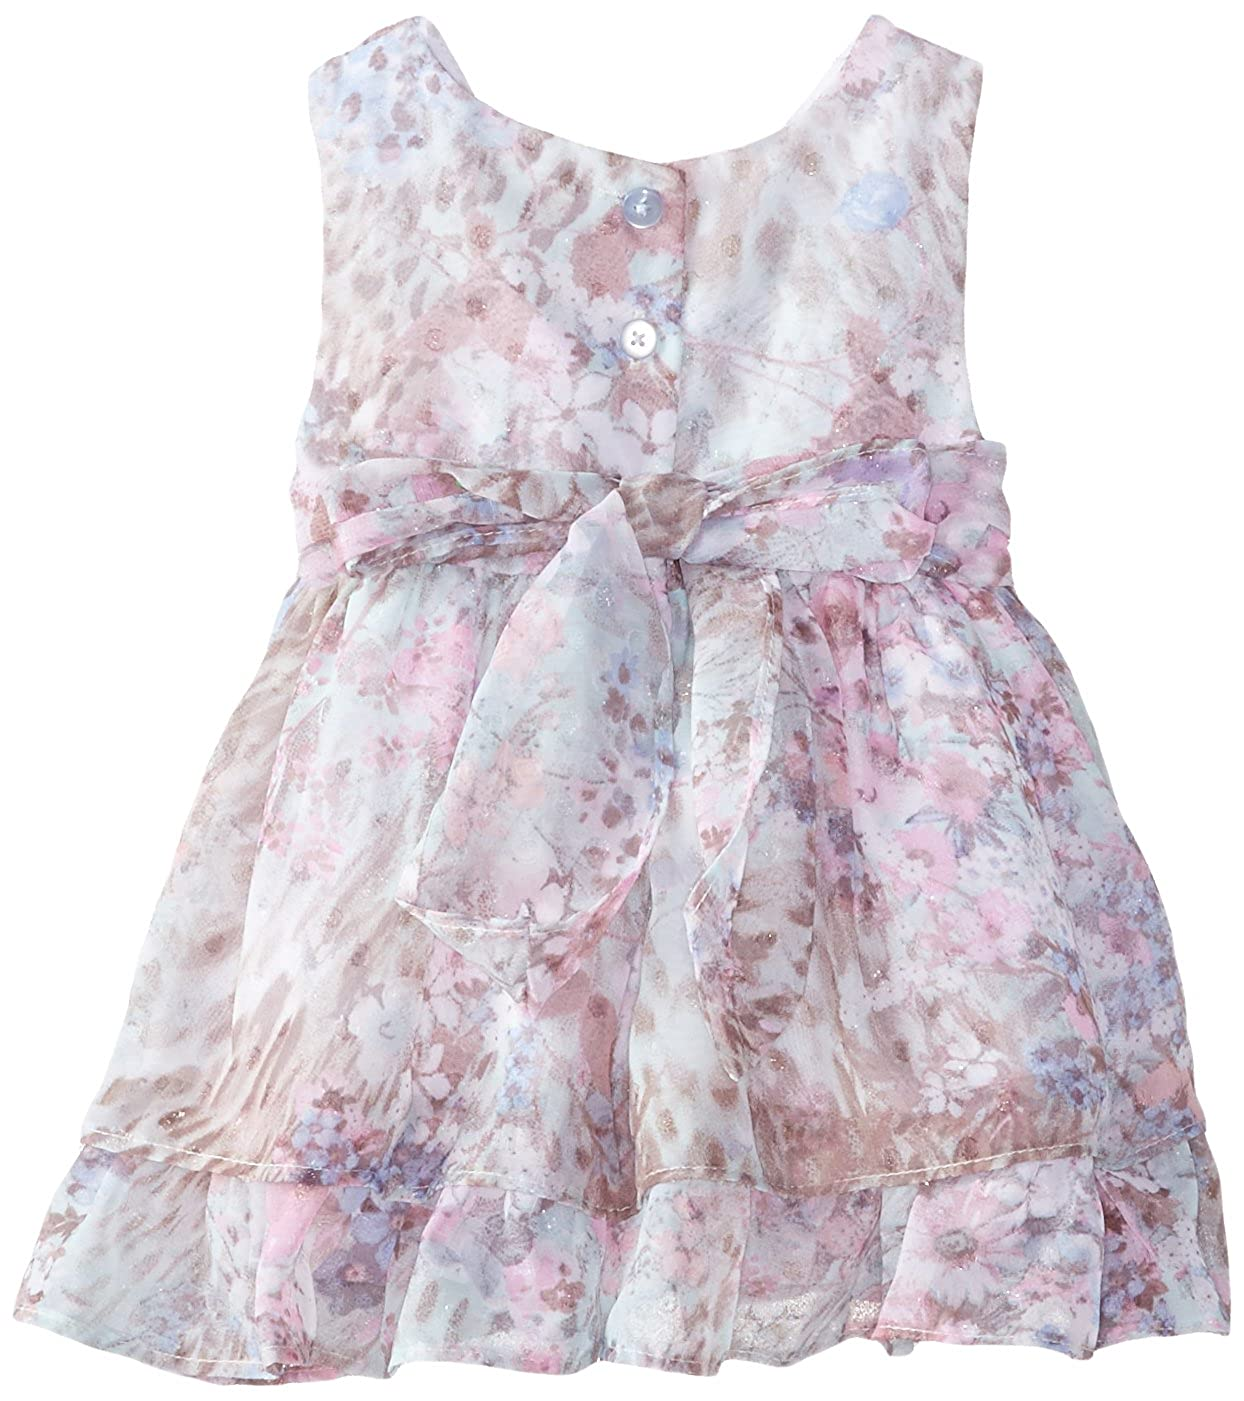 Marmellata Girls Baby-Infant Floral Ruffles Dress